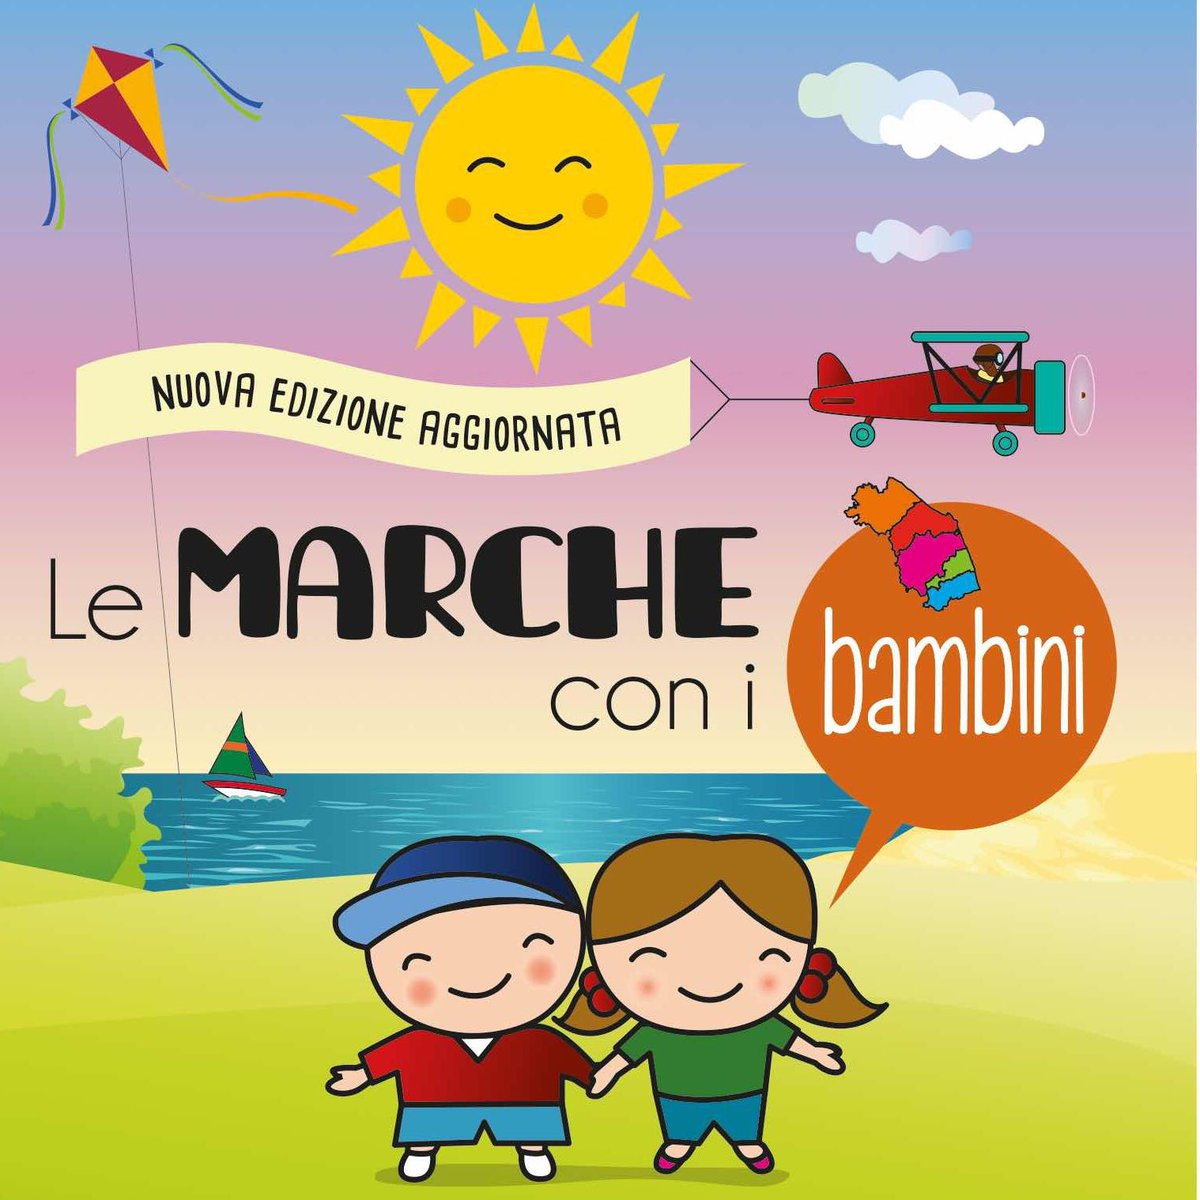 "test Twitter Media - Finalmente potete pre-ordinare la nuova edizione di ""Le Marche con i bambini"" nuovissima aggiornata e ricca di foto ❤️ https://t.co/rzRUf2PtZ1 #lemarcheconibambini #destinazionemarche @lonelyplanet @lpkids @MarcheTourism @mammemarche @Sole_in_Faccia https://t.co/hnbVp0ORYd"